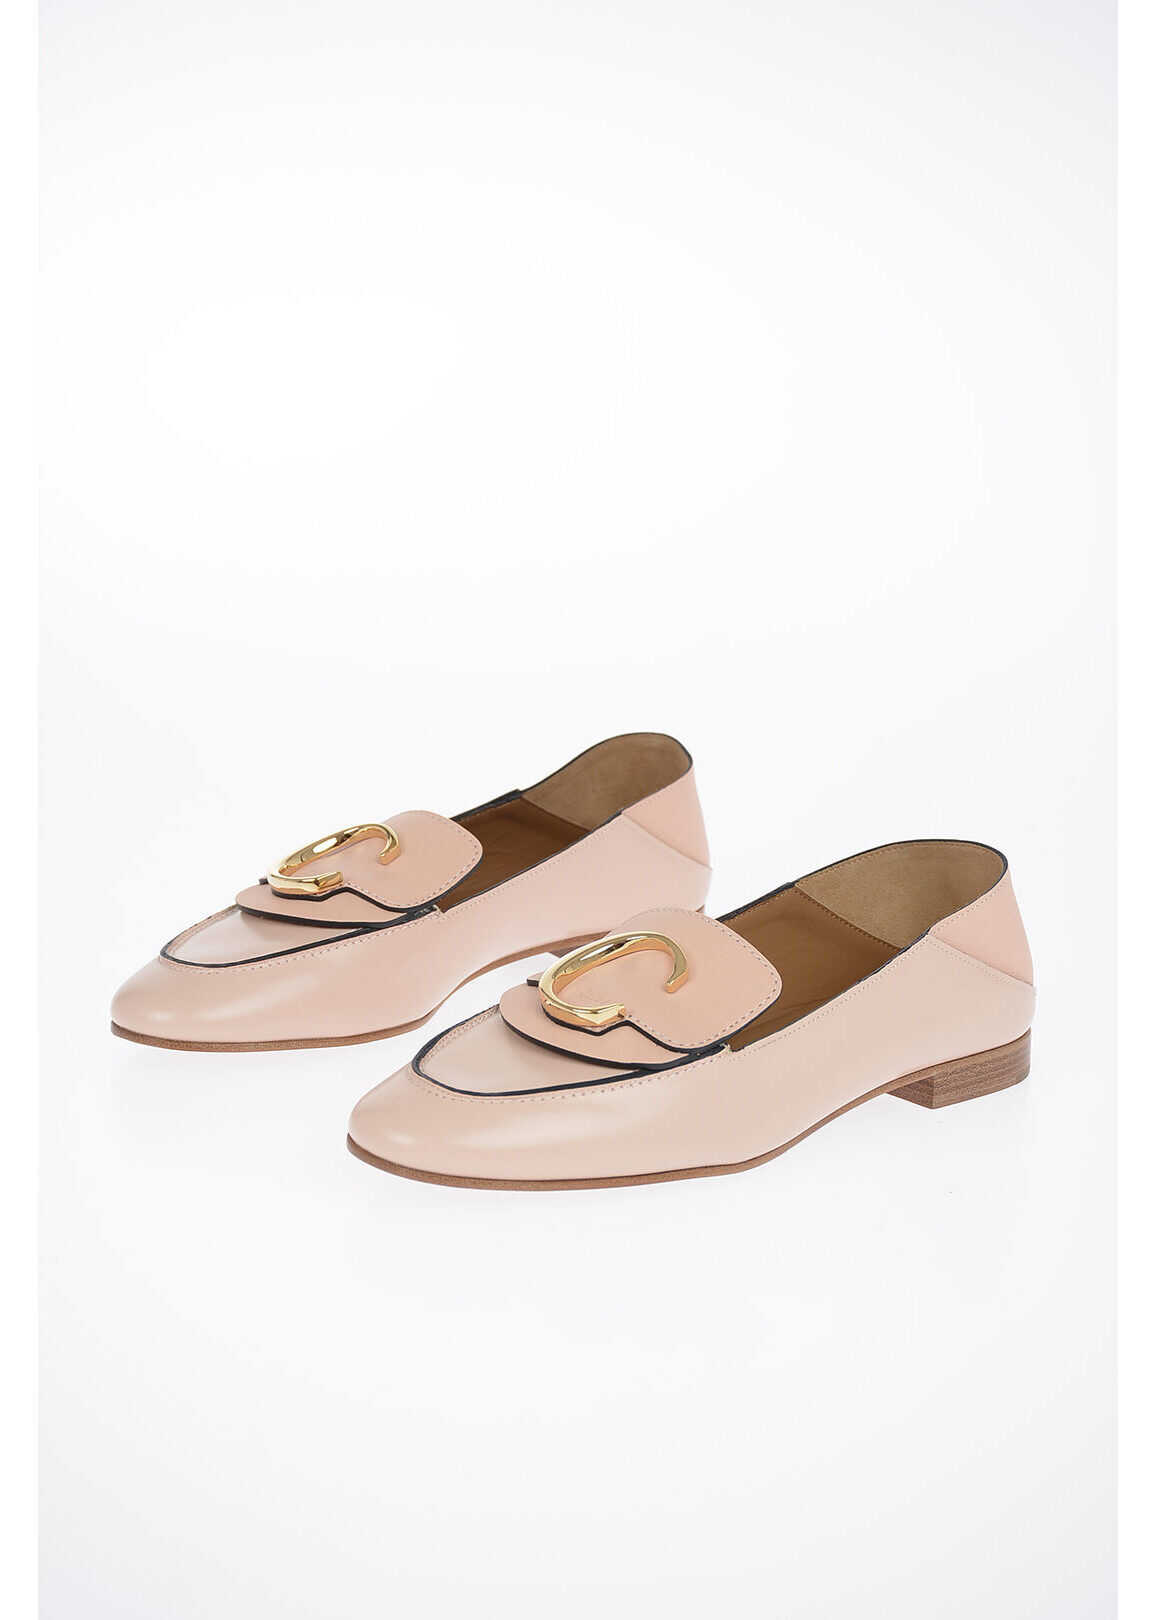 Chloe Leather Loafer PINK